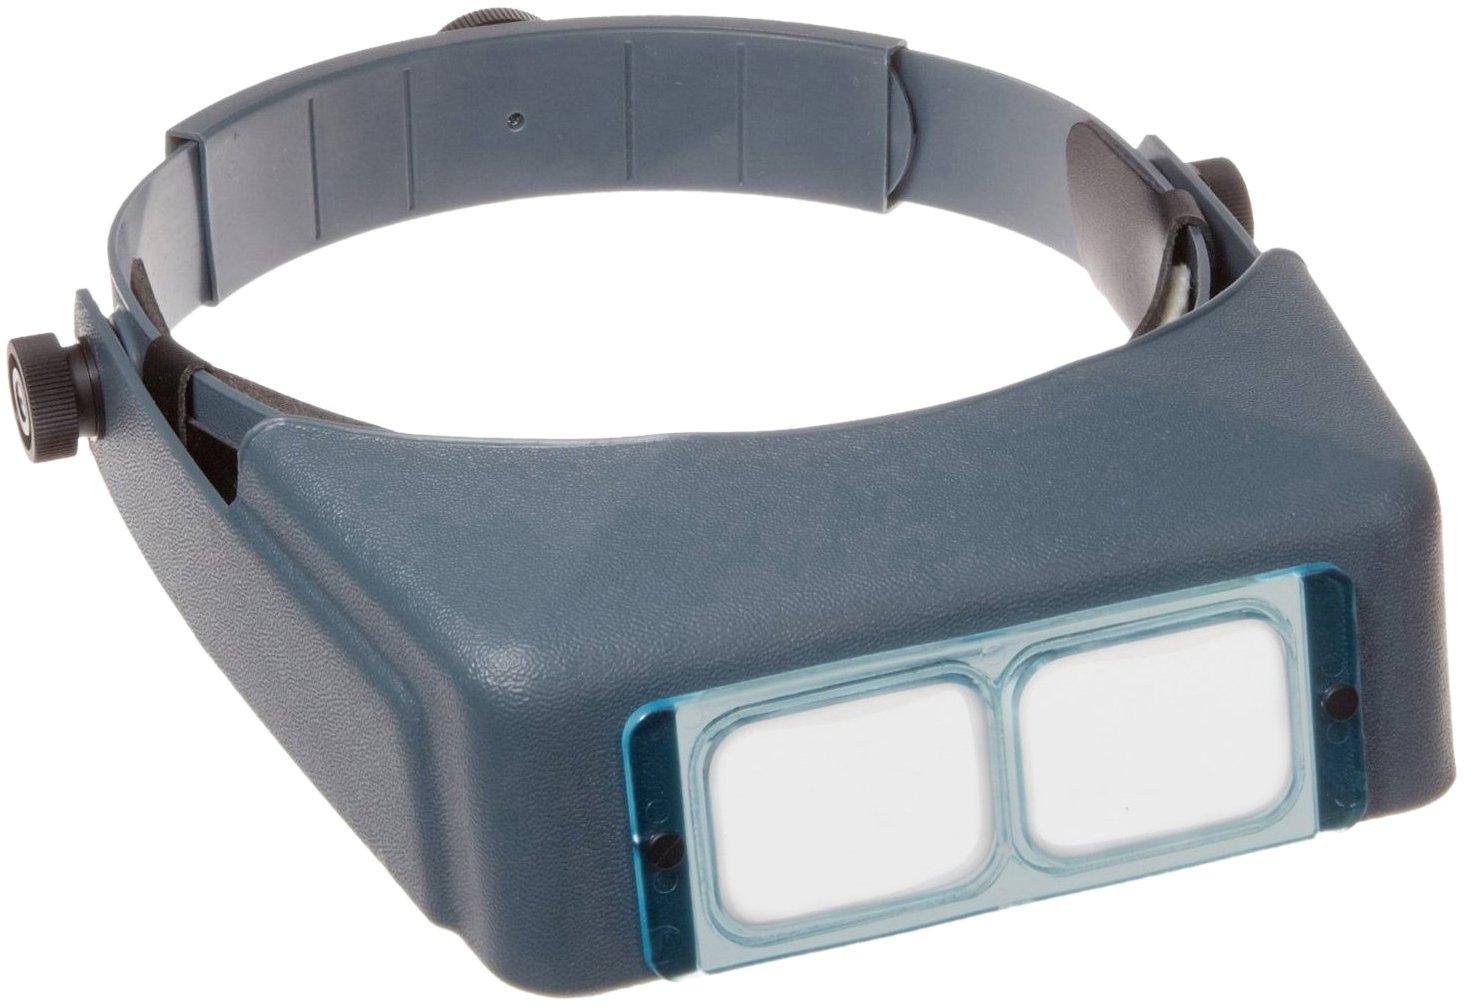 Donegan DA-4 OptiVISOR Headband Magnifier, 2X Magnification Glass Lens Plate, 10'' Focal Length